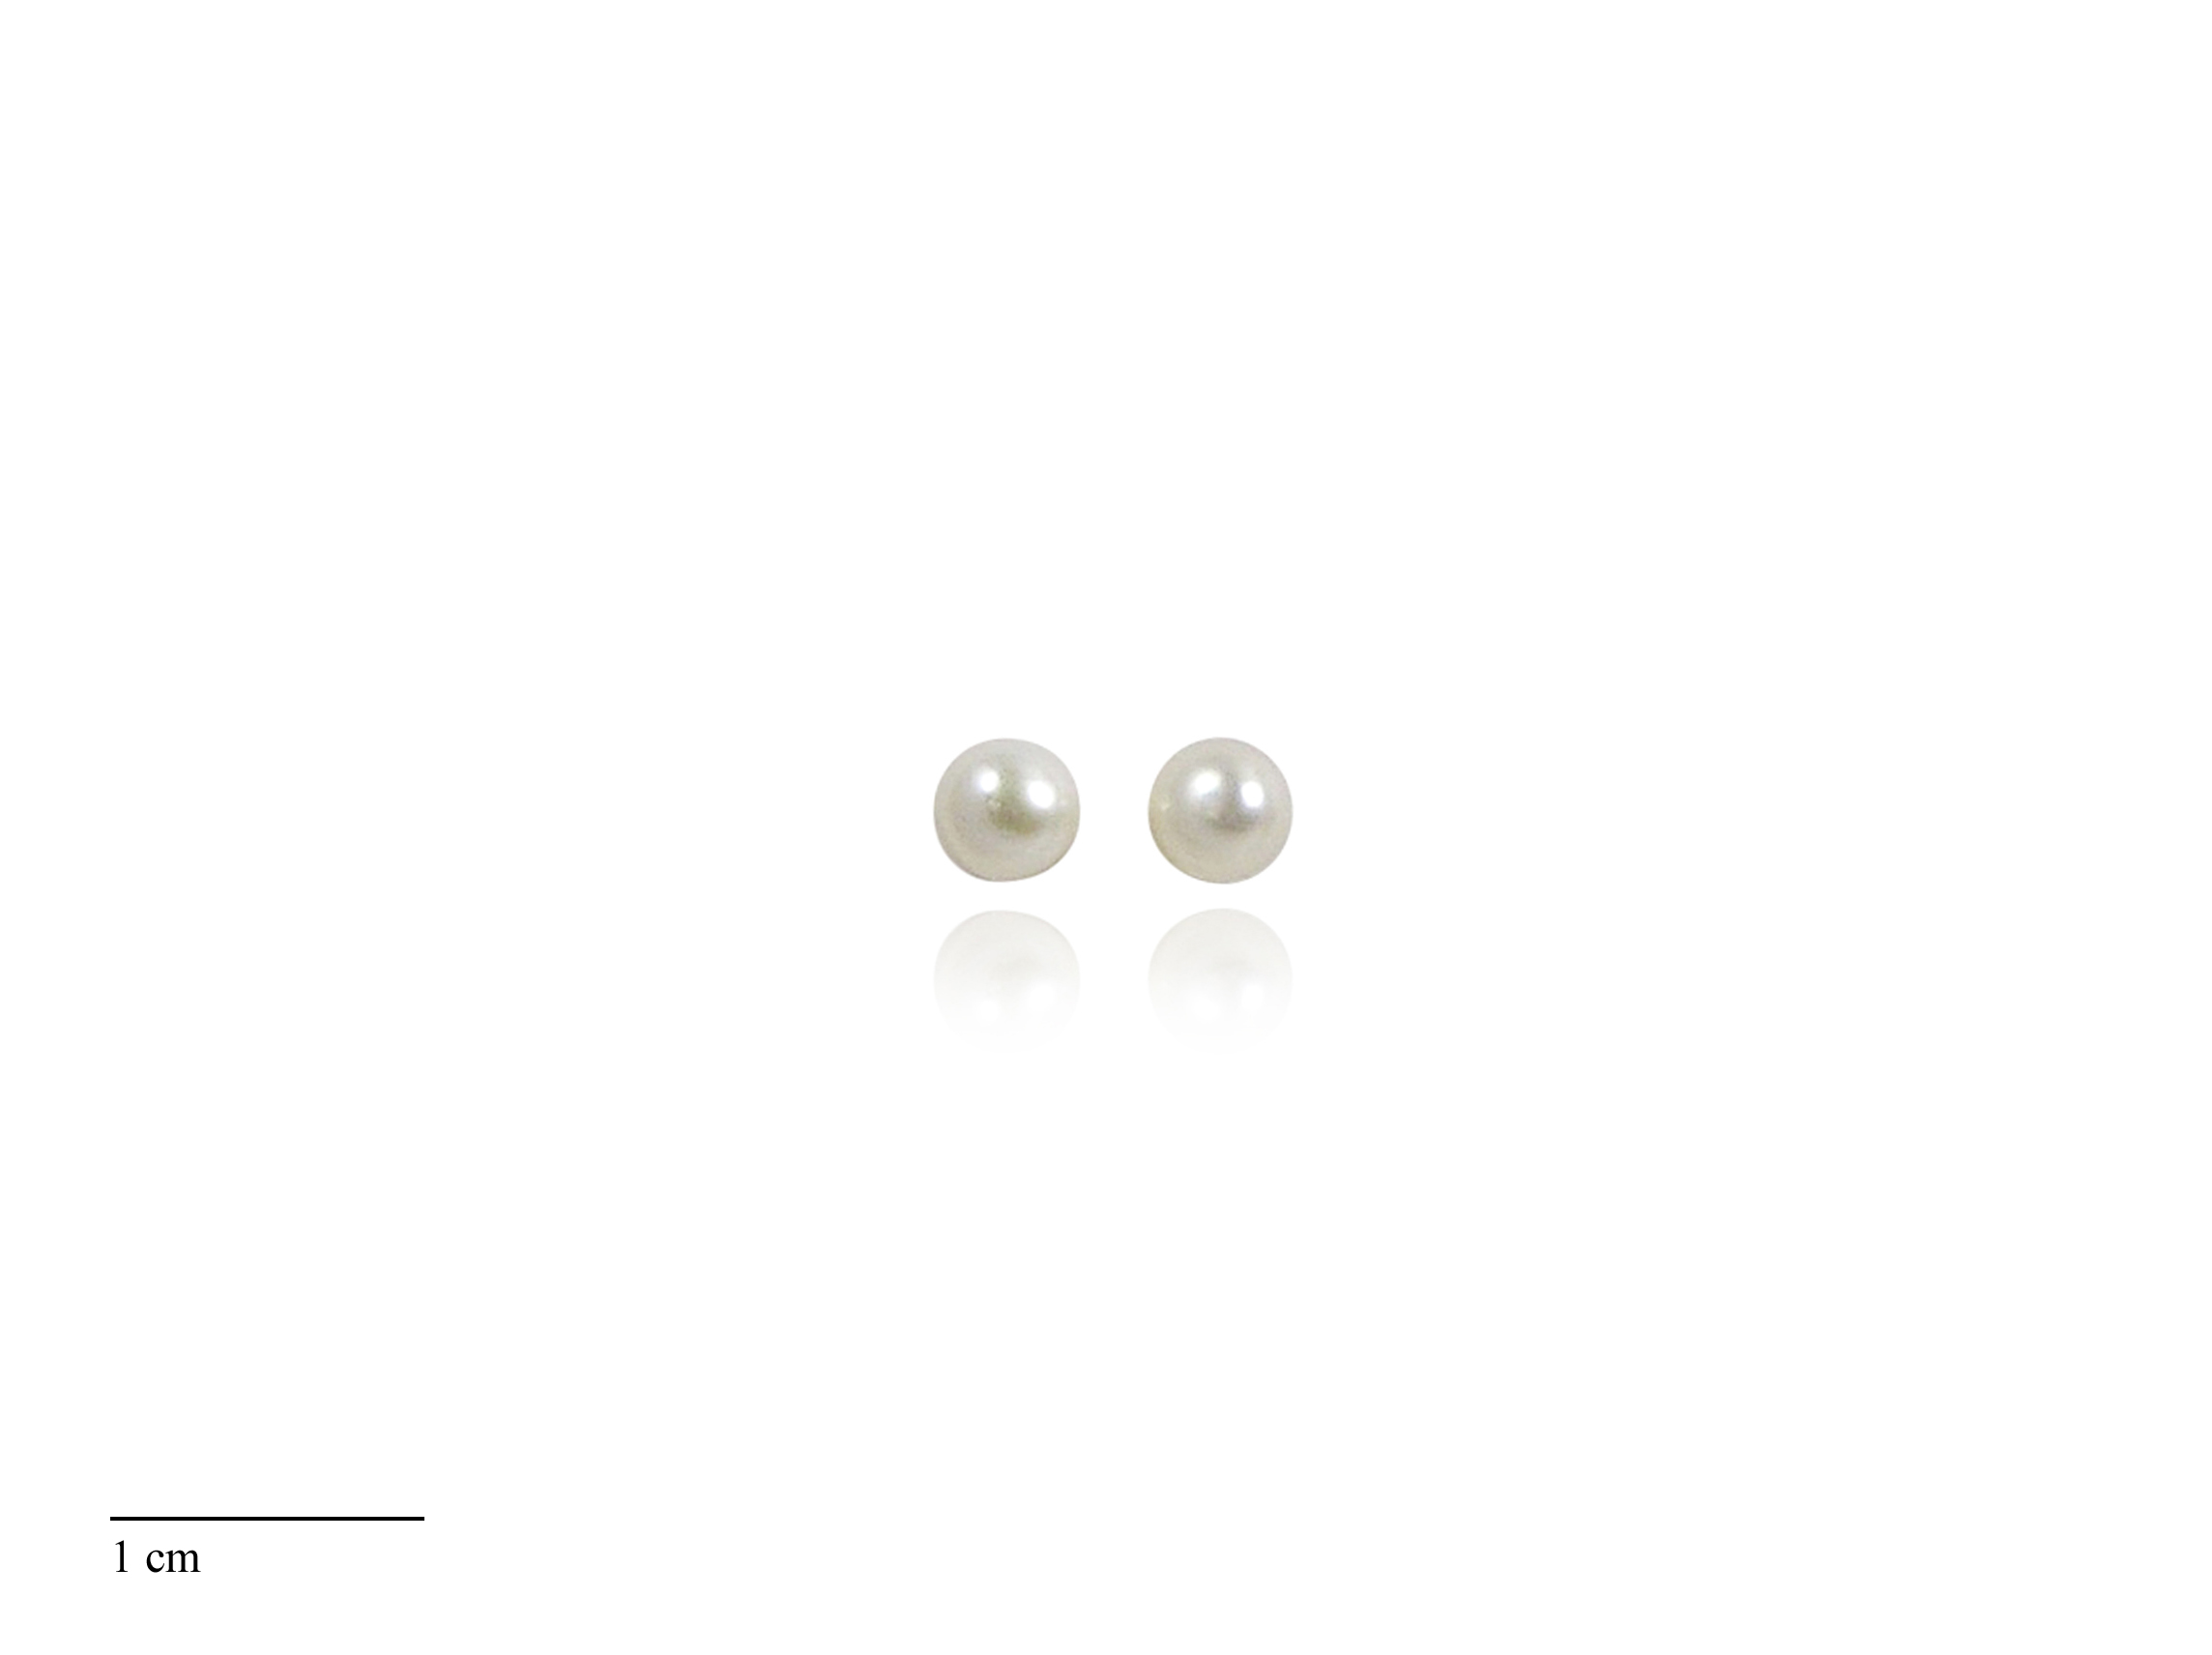 White Freshwater Pearl Stud Earrings